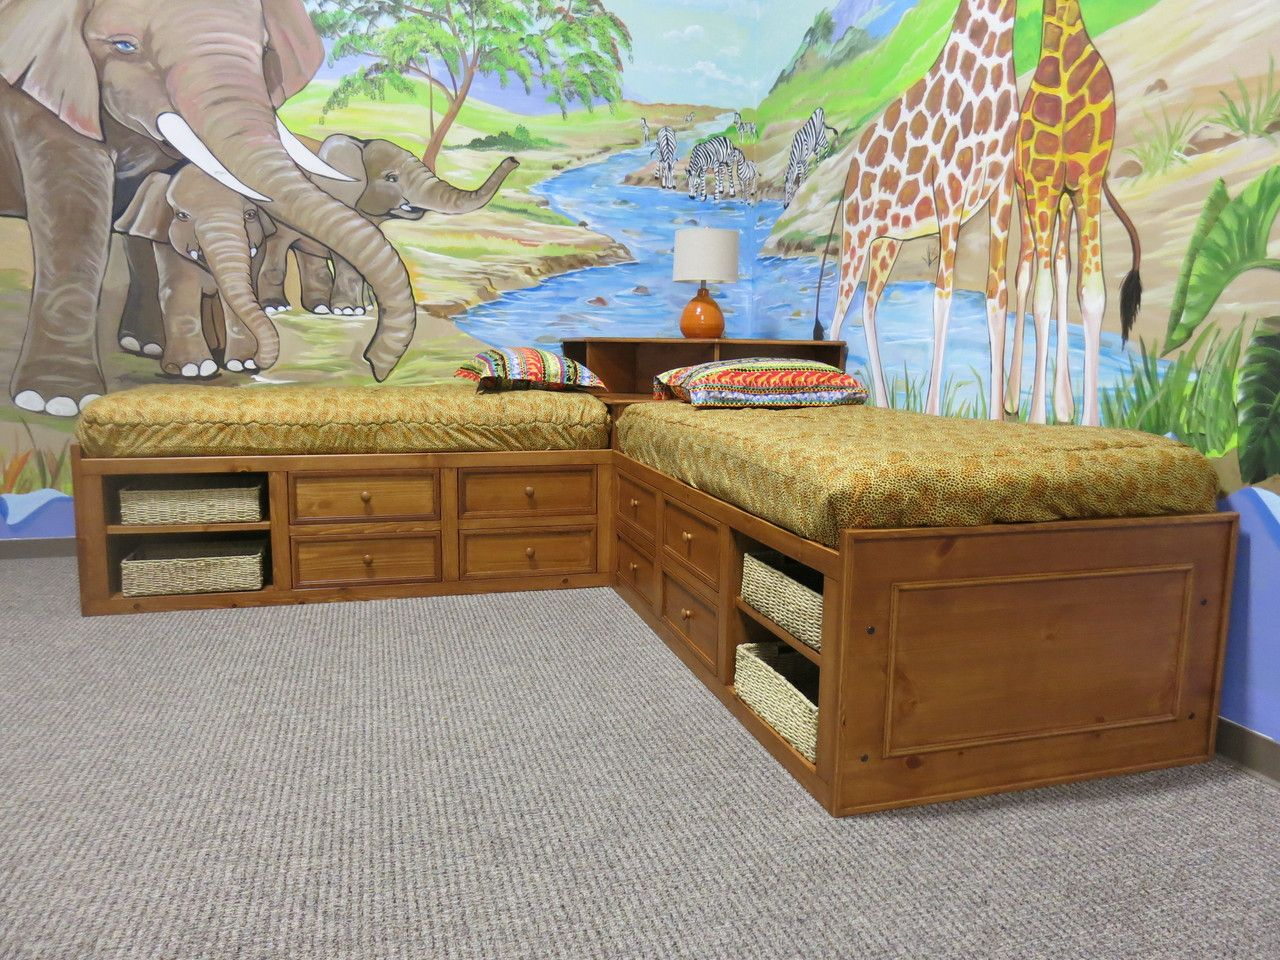 Corner twin bed bedroom sets for boys - Wonderful Kids Room Decorating With Jungle Theme Wallpaper Design